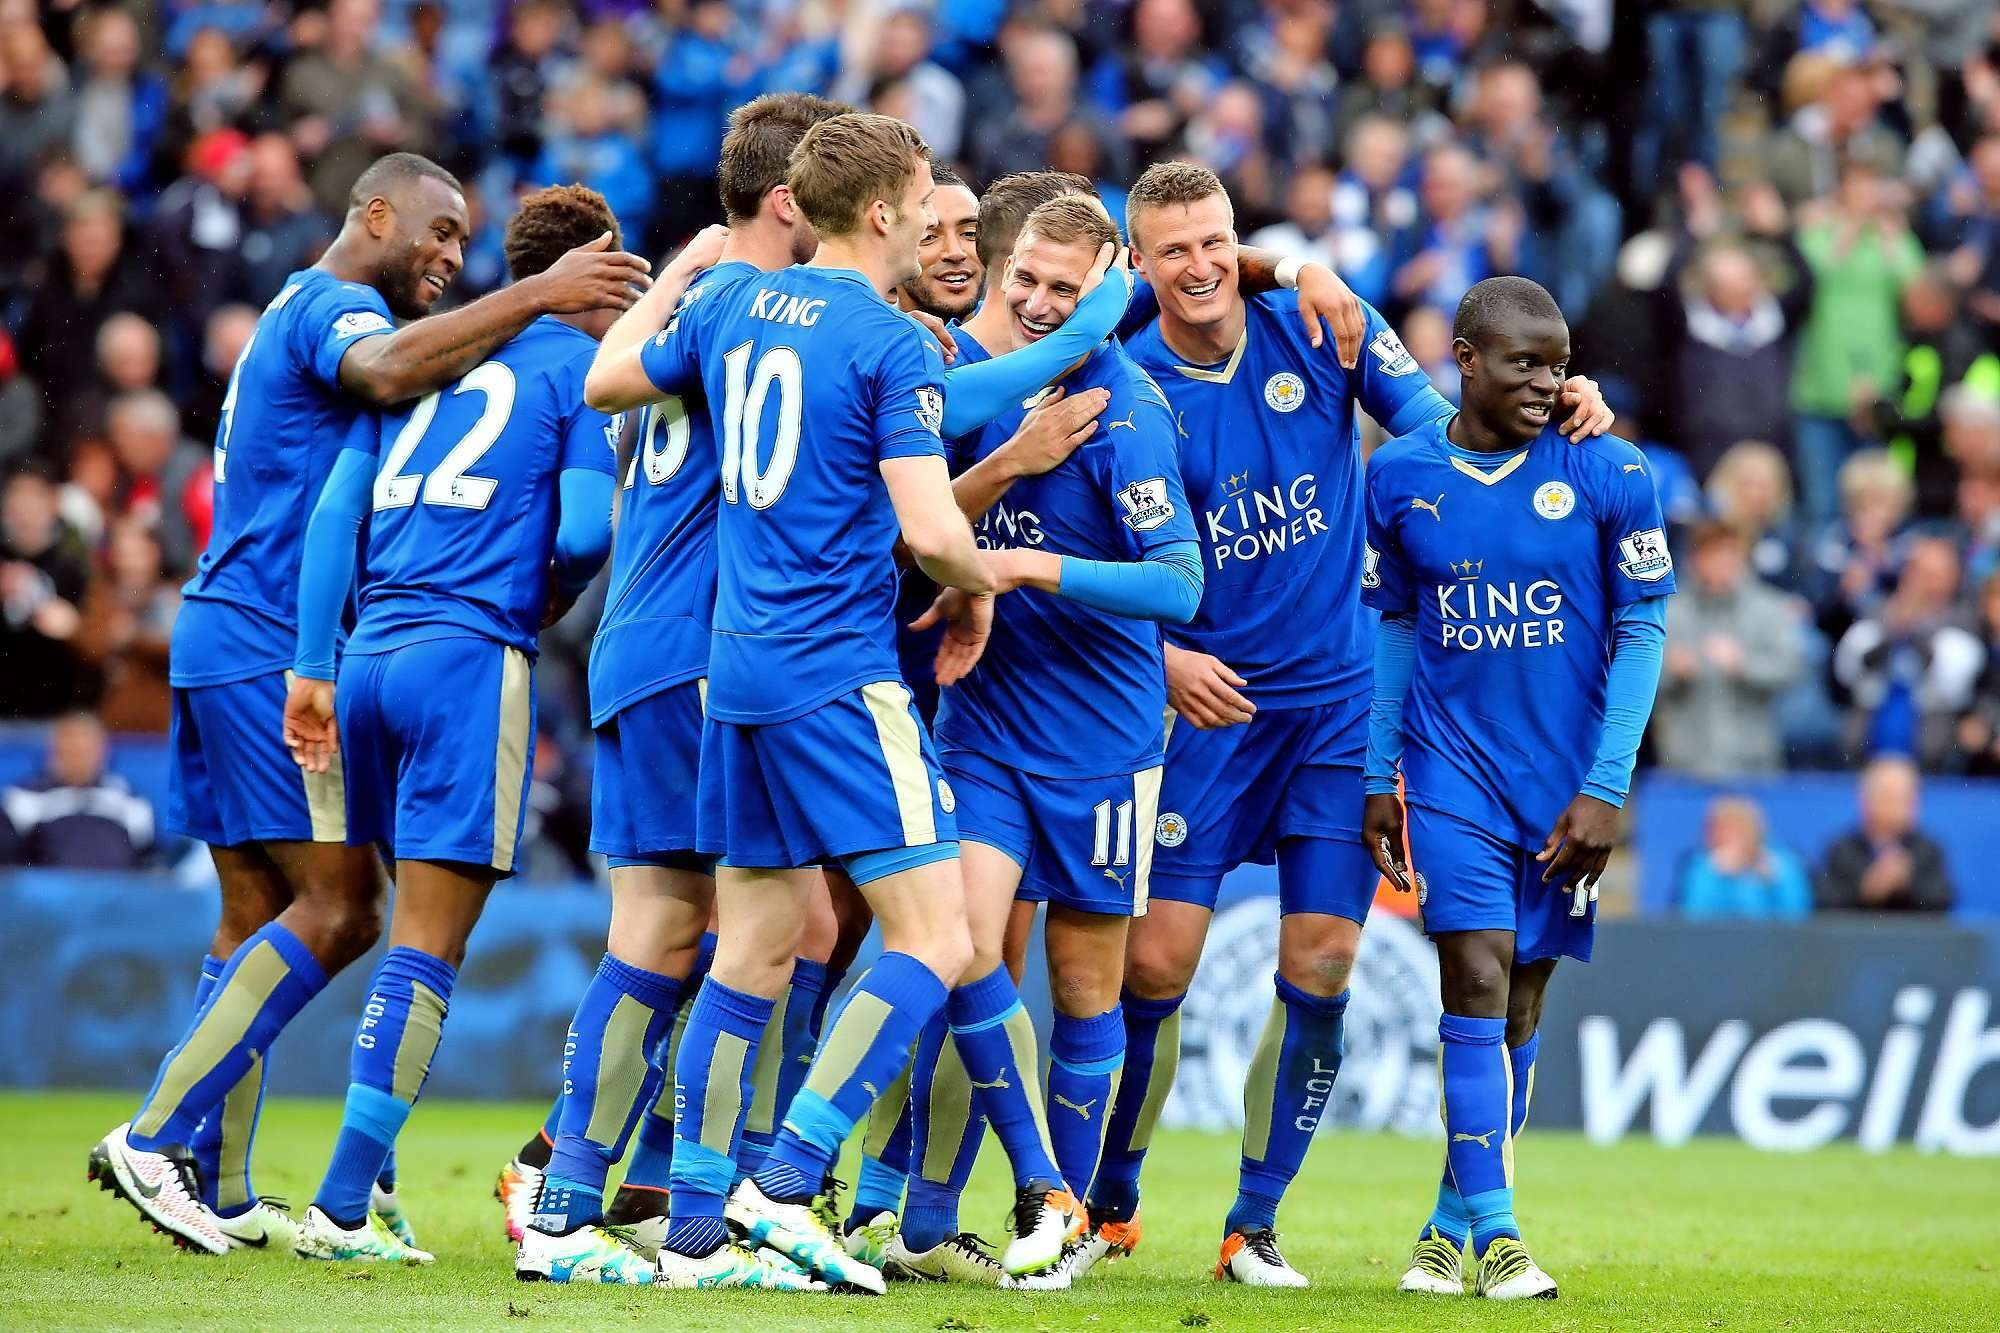 Leicester City Meister